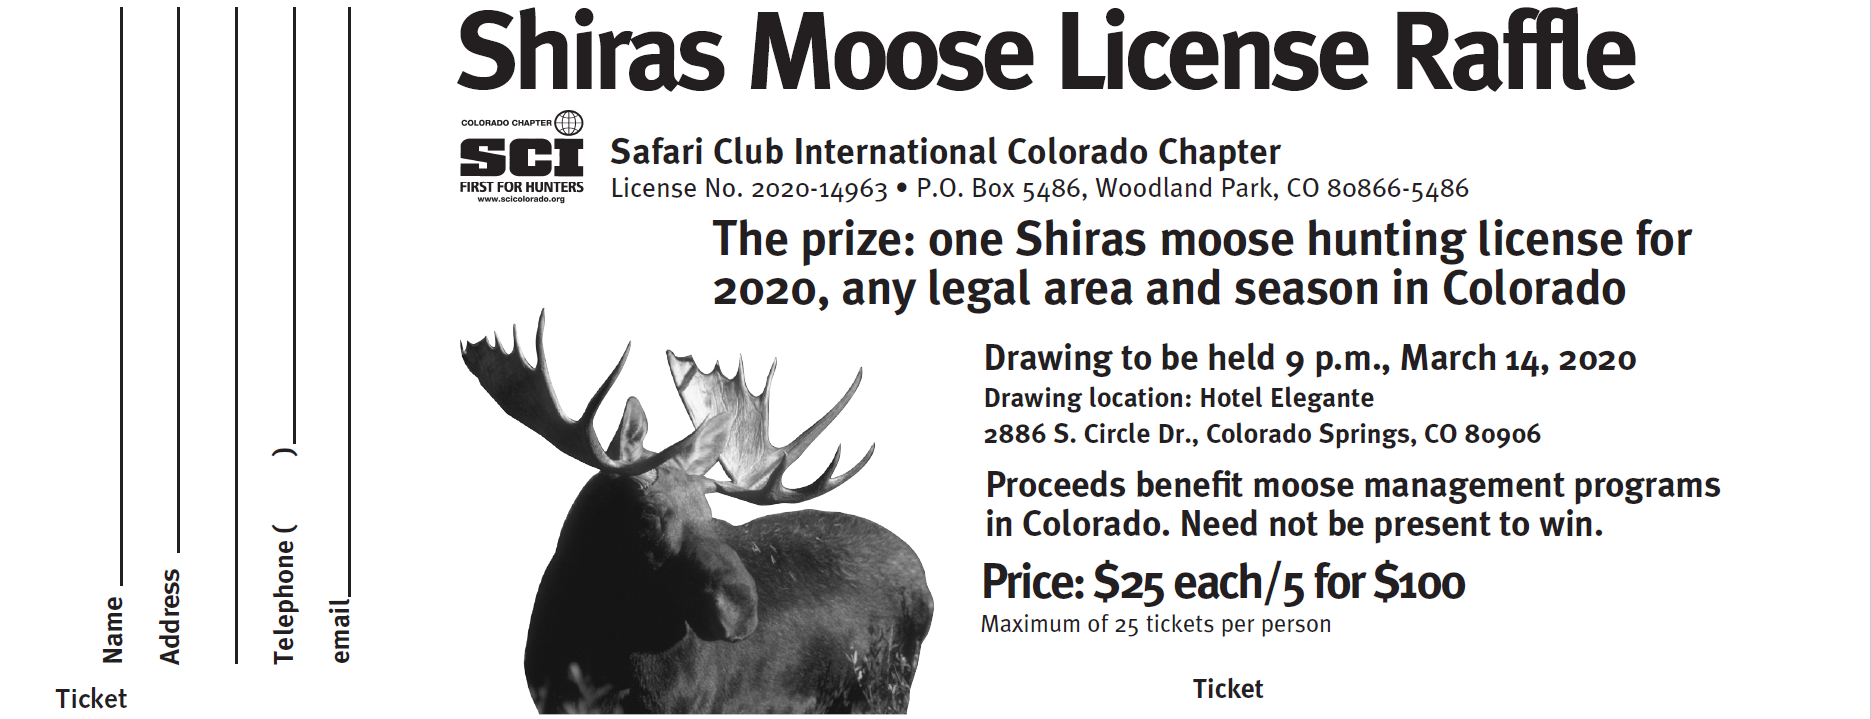 Statewide Moose License Raffle - 5 Tickets